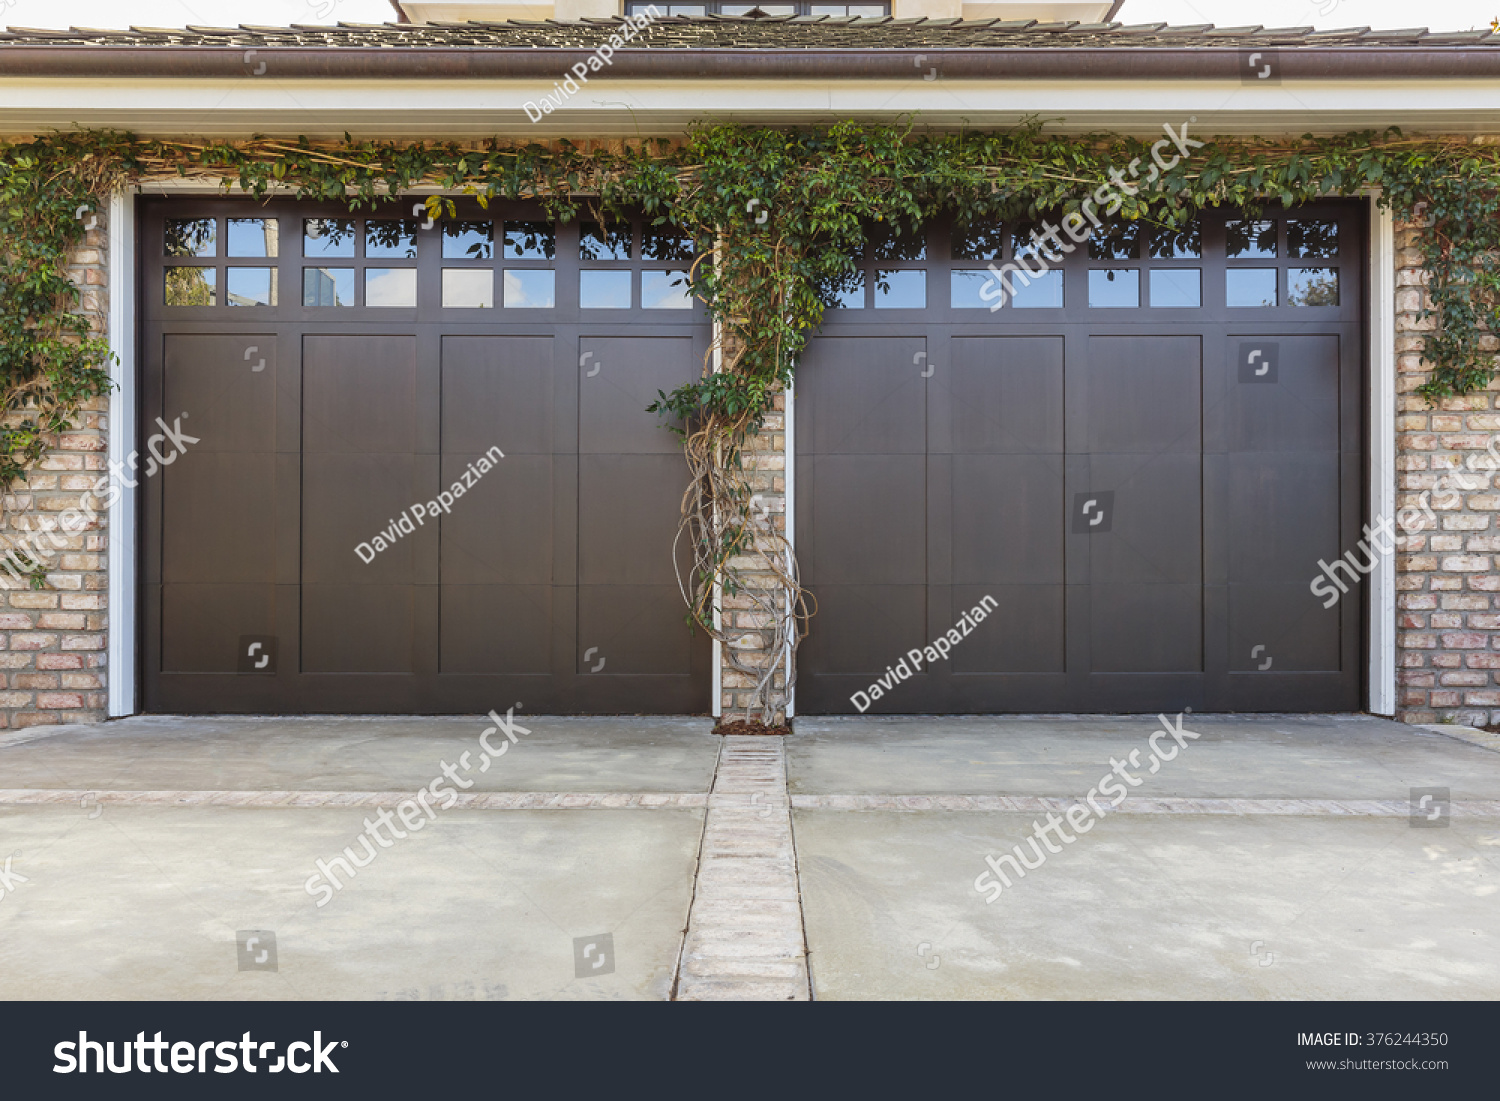 panel better martin brown most garage doors grooved adobe stone cost low than door standard is